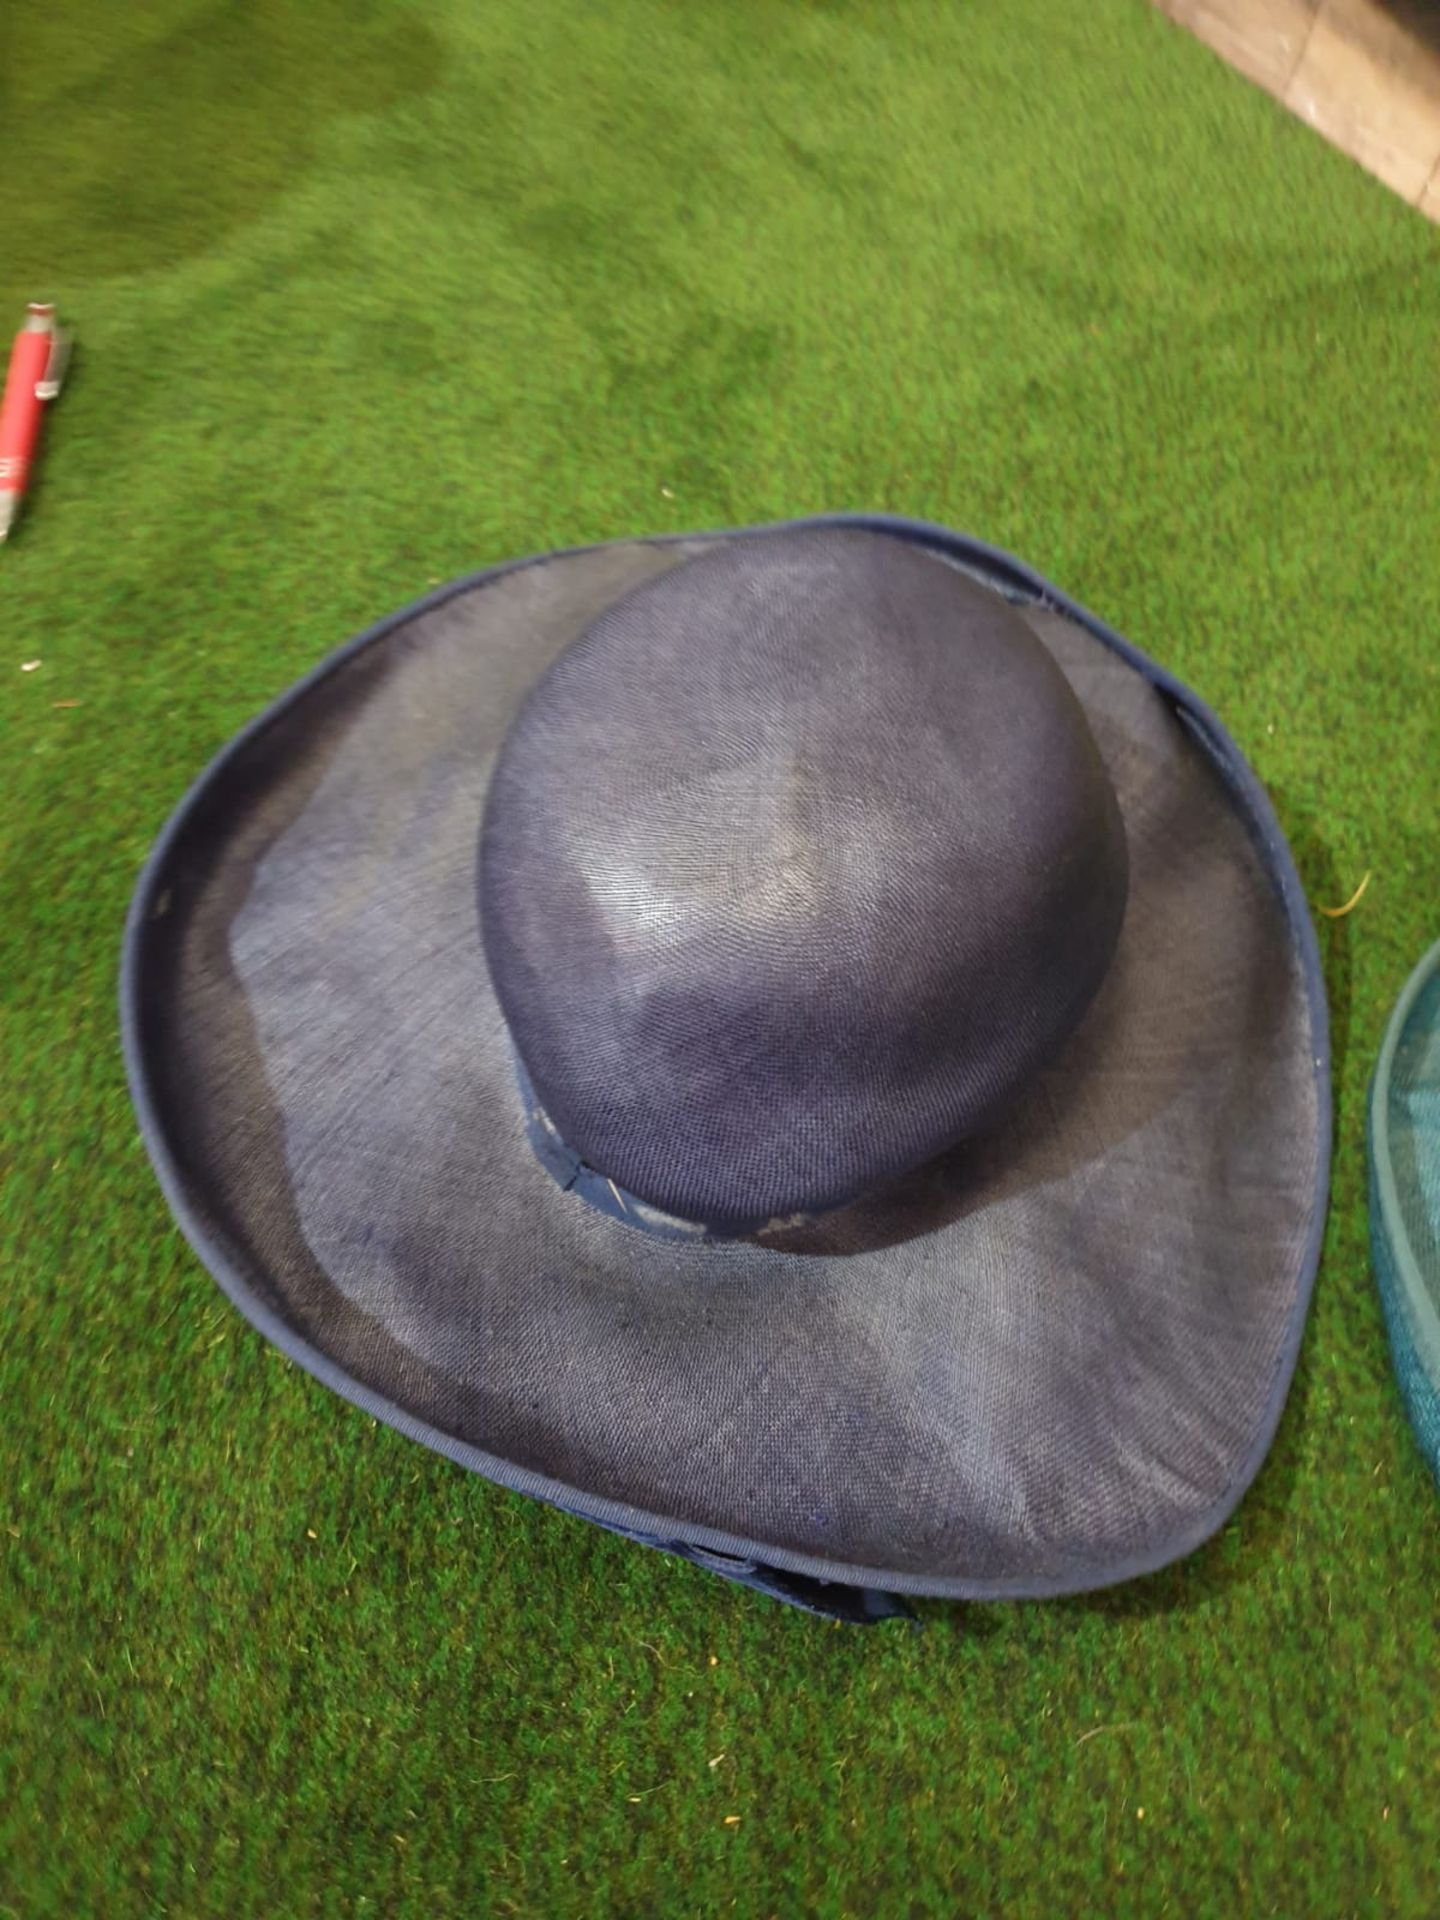 2 x Edith Poole from South Molton Street London Vintage Ladies Hats 1 x Navy Blue straw hat and 1 - Image 3 of 7